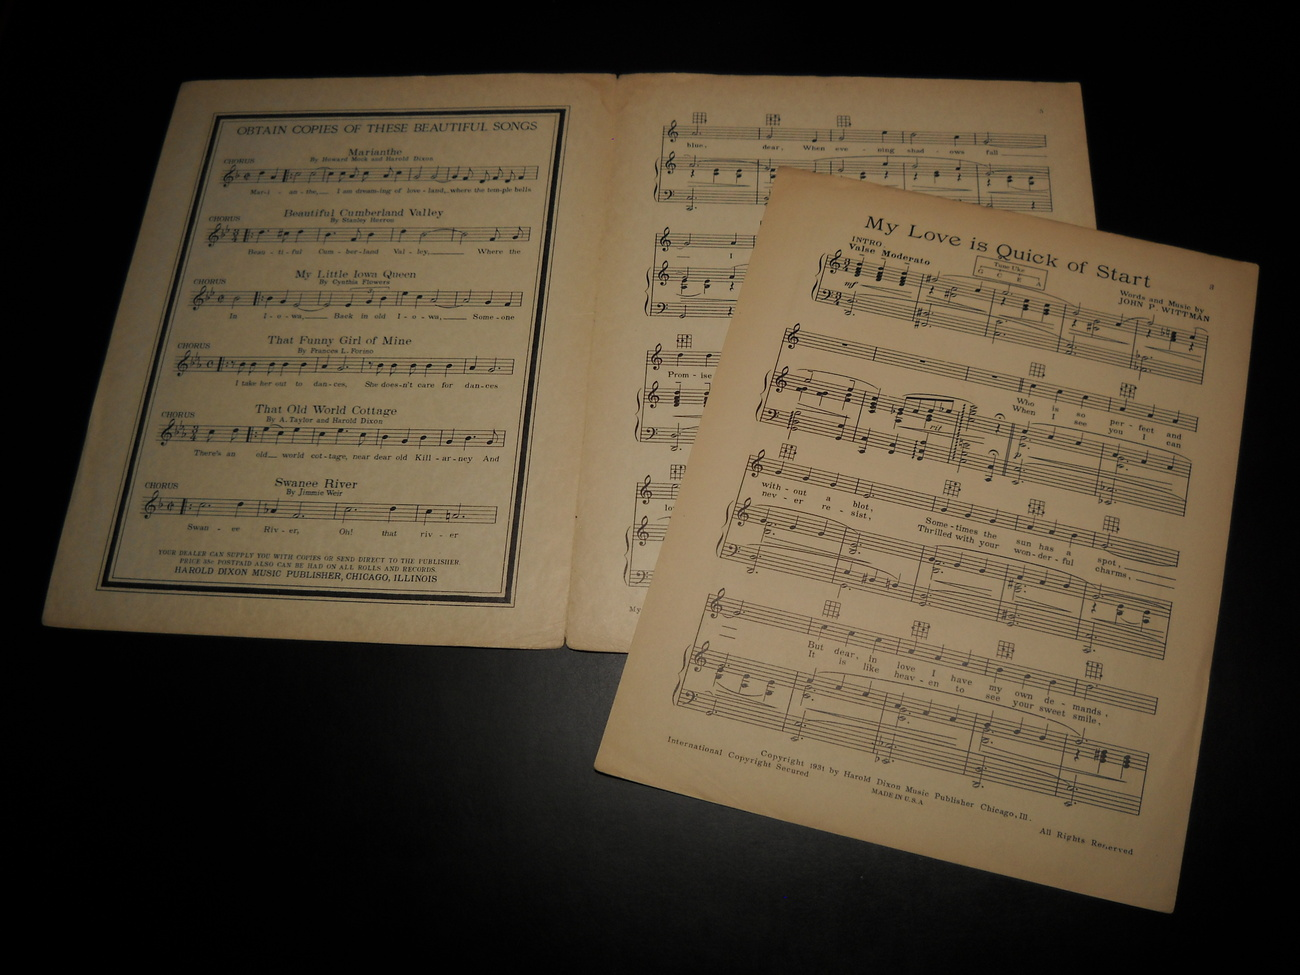 Sheet_music_my_love_is_quick_of_start_john_p_whitman_1931_harold_dixon_05